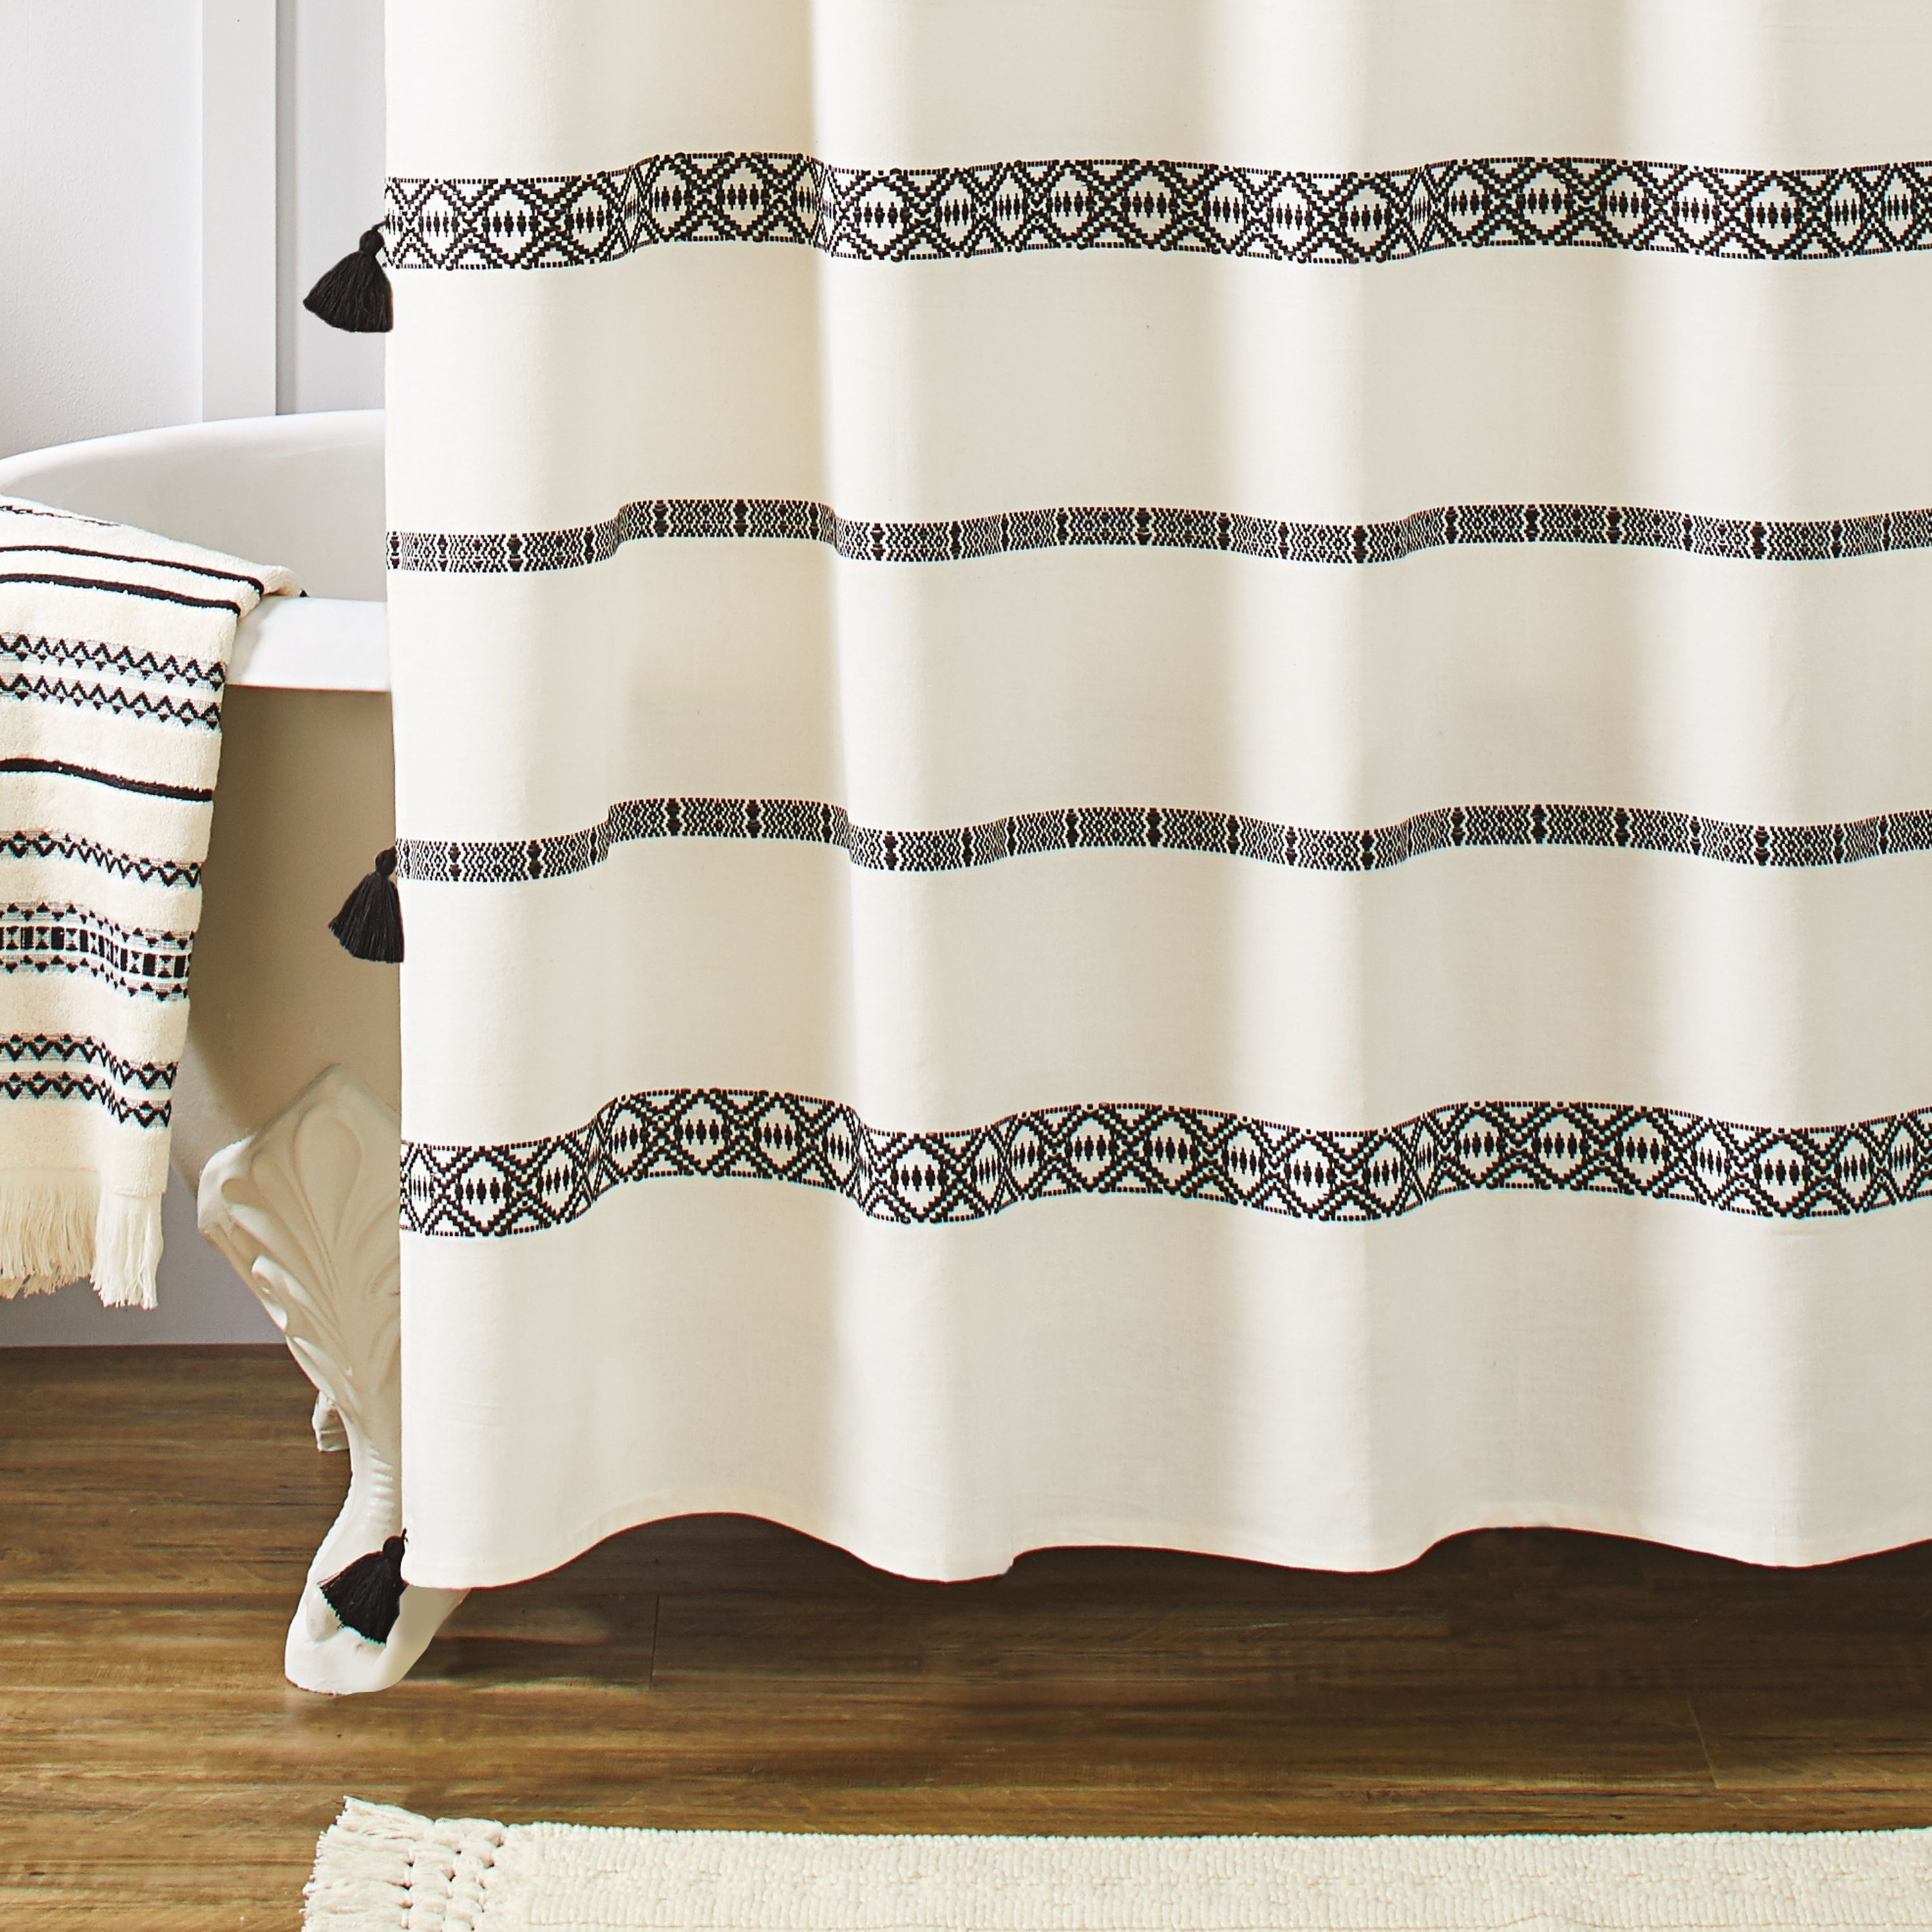 782359766503929310 With Images Farmhouse Shower Curtain Black Shower Curtains Unique Shower Curtain